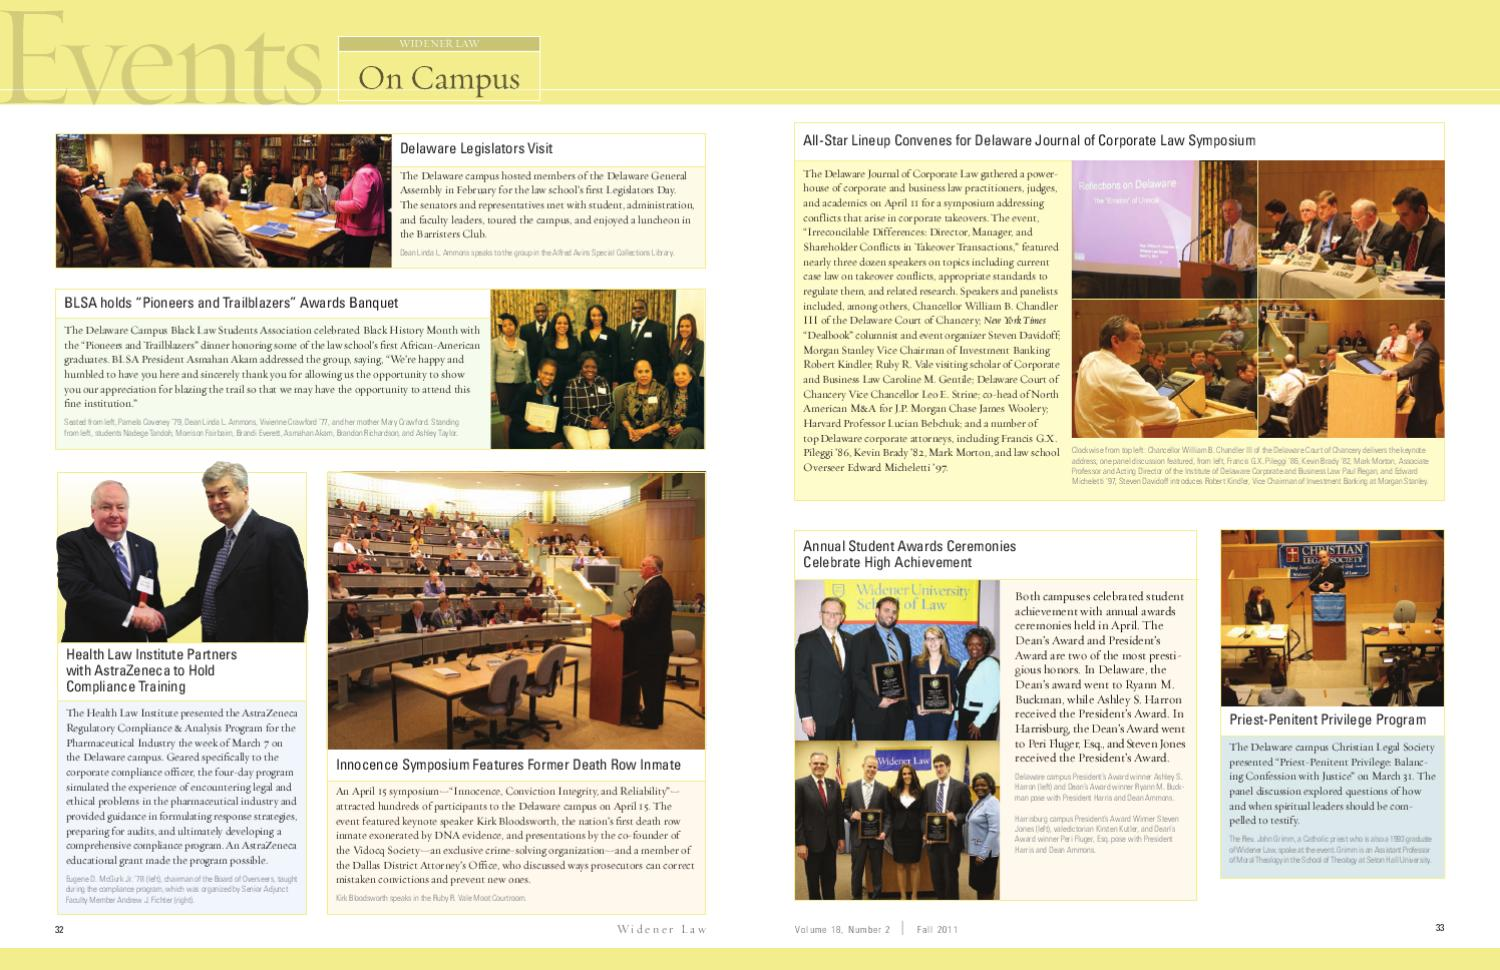 Widener Law Magazine Fall 2011 - Widener Law School by